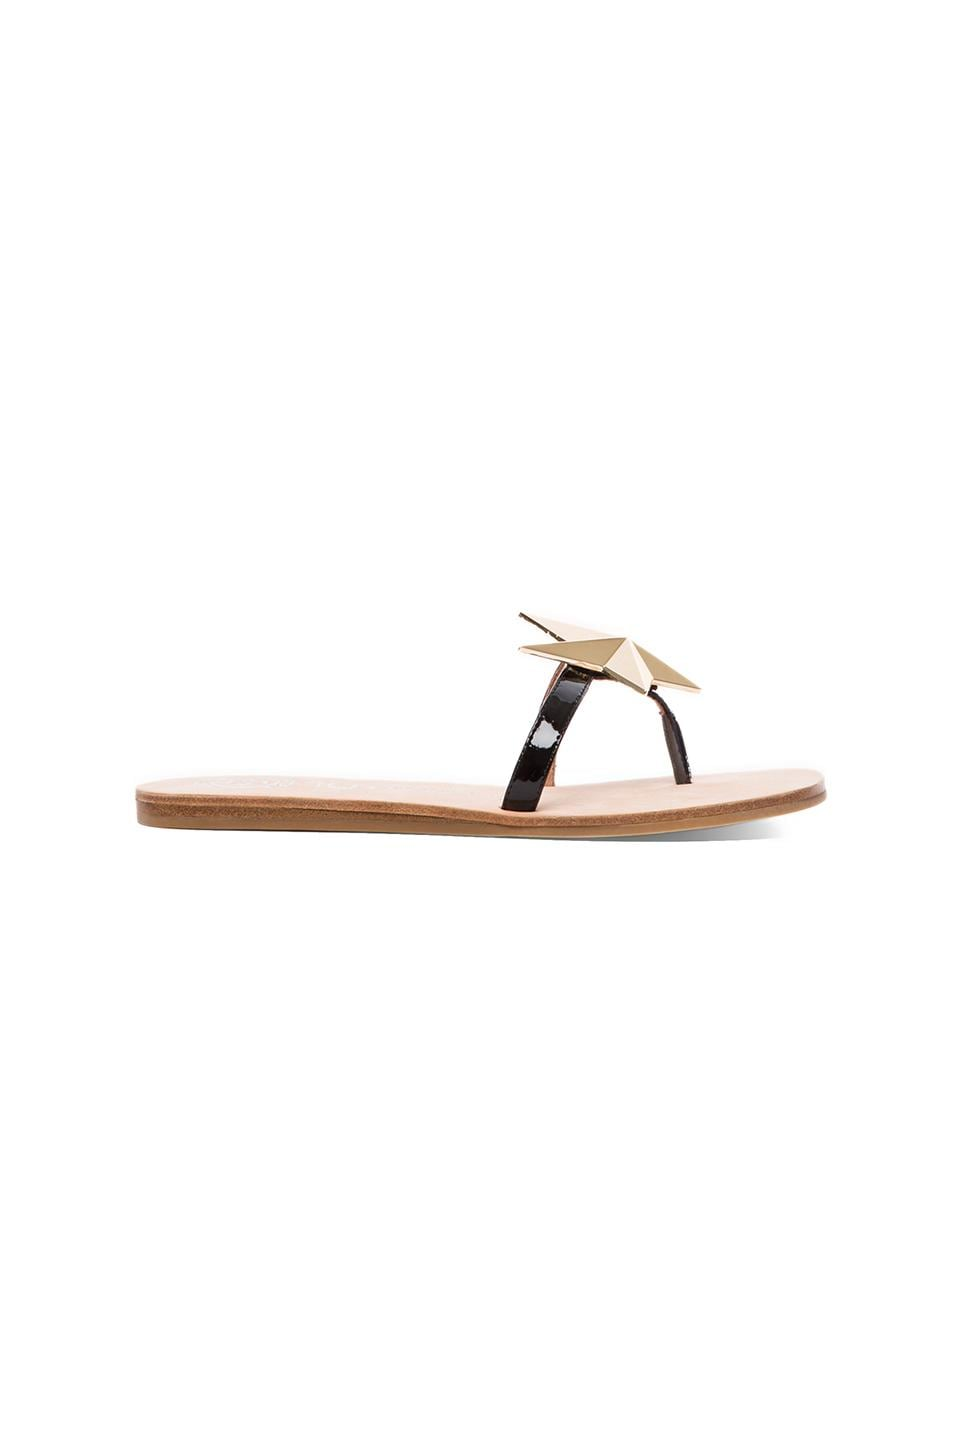 Jeffrey Campbell Norstar Sandal in Black & Gold